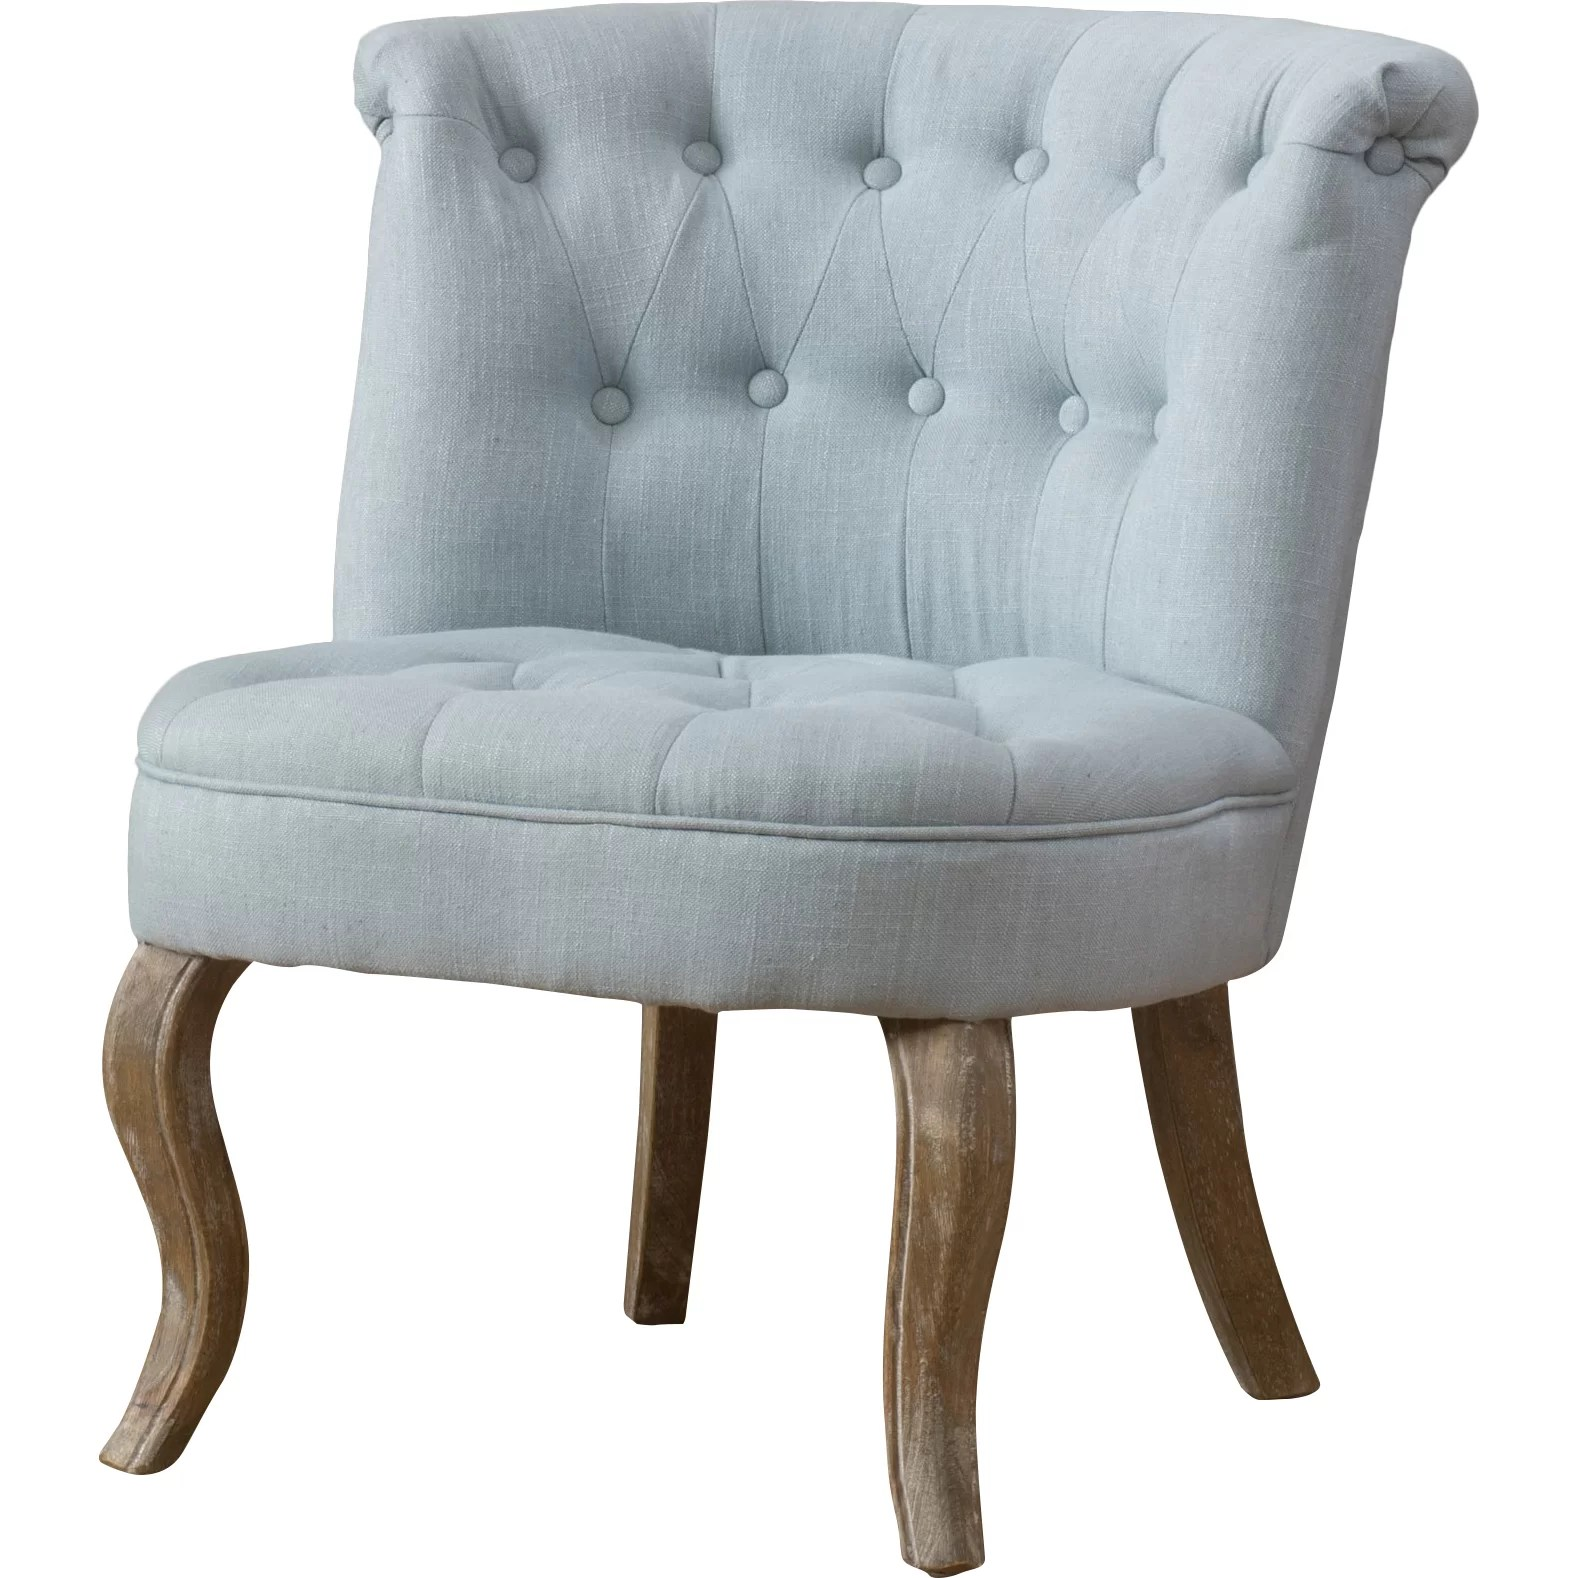 Tufted Slipper Chair Montreuil Tufted Slipper Chair Wayfair